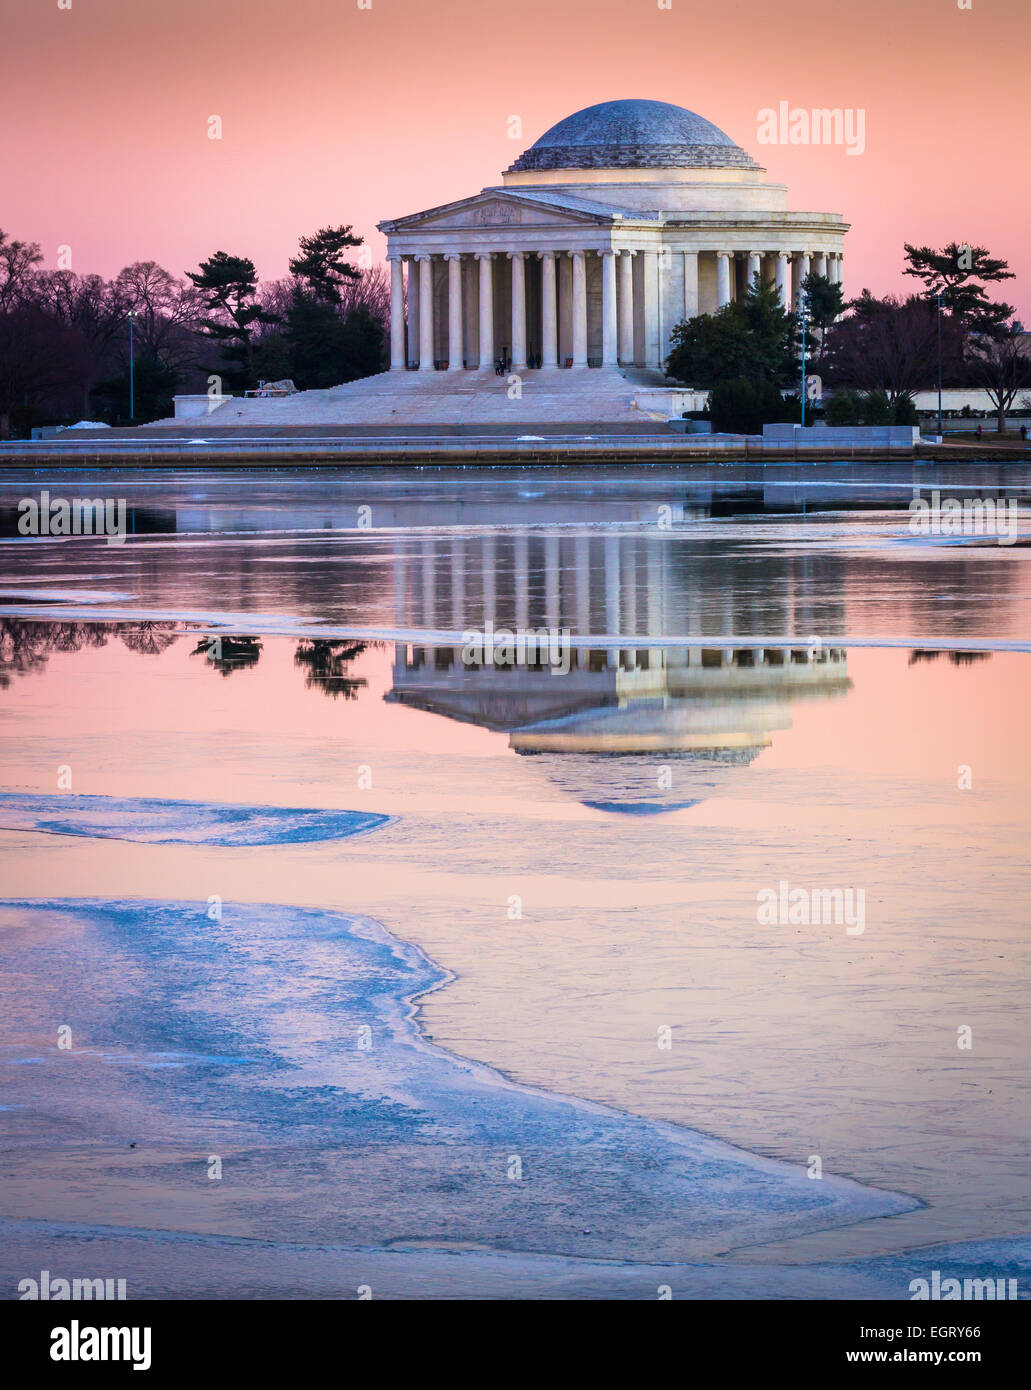 The Thomas Jefferson Memorial in Washington, D.C. is dedicated to Thomas Jefferson, the third President of the United - Stock Image